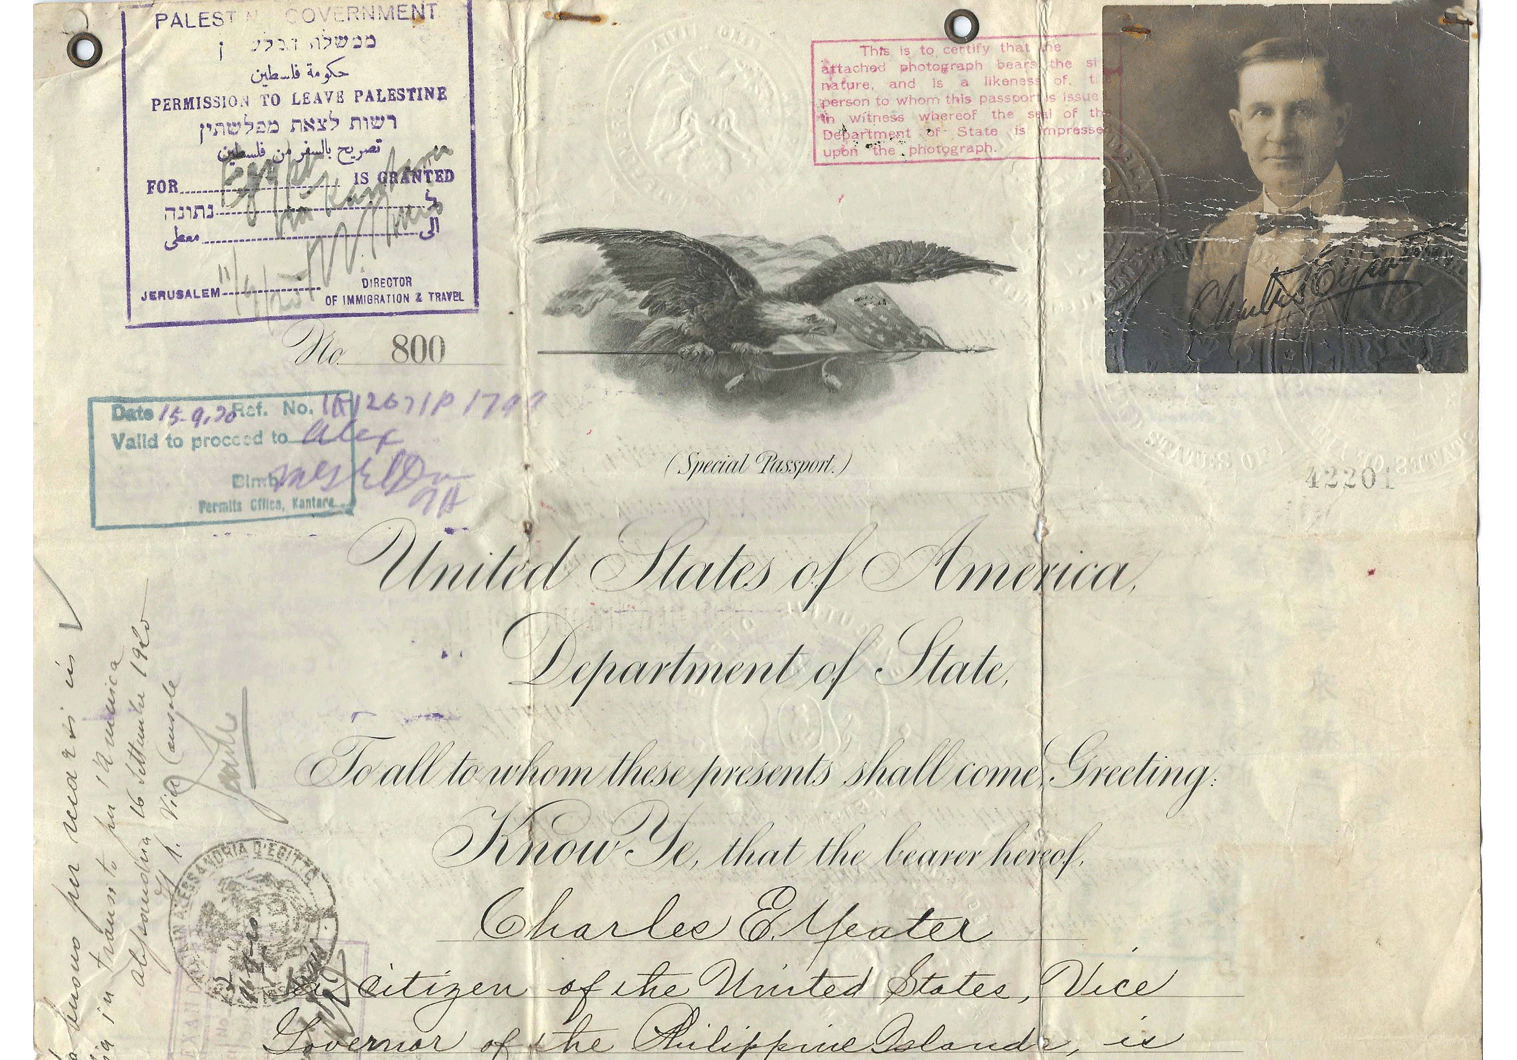 WWI United States Special passport